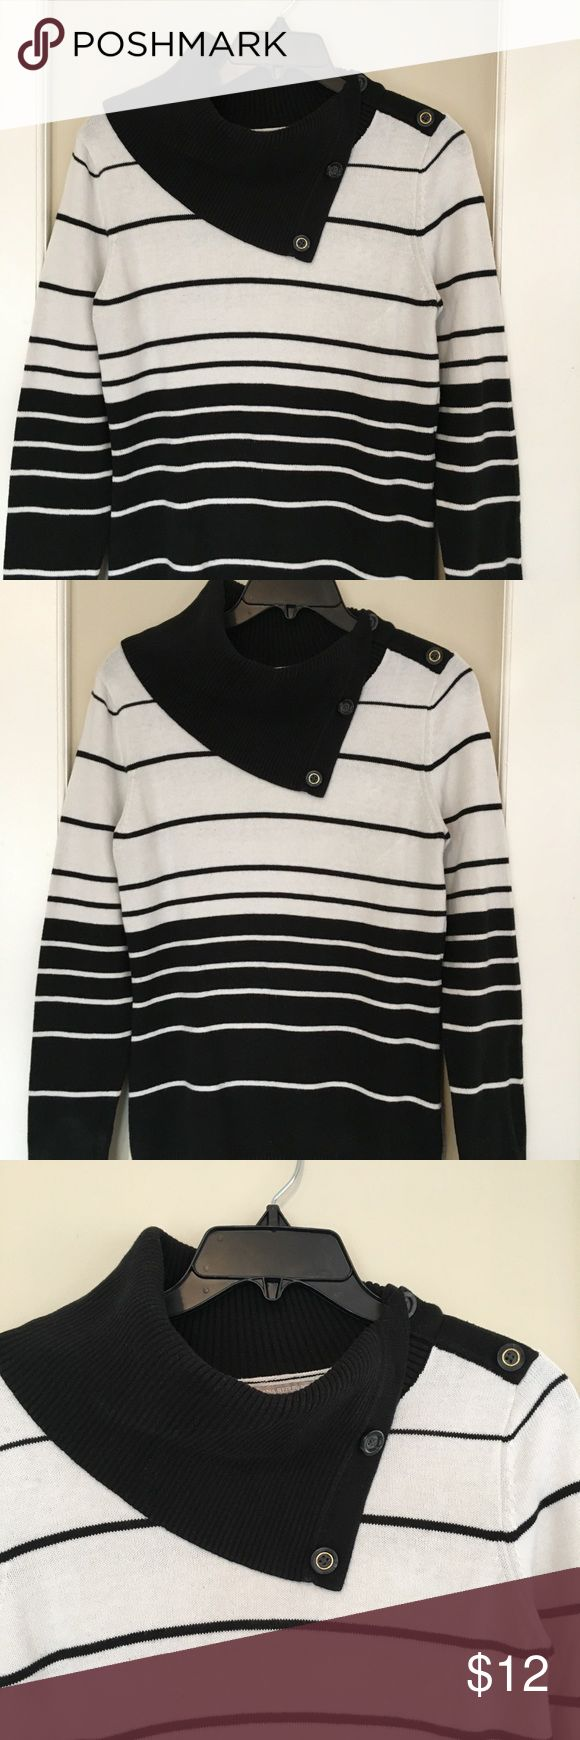 Banana Republic sweater Cowl neck sweater with black and white stripes. Has buttons down one shoulder. Dry cleaned, but there are two small spots on the back as pictured. Might be a color transfer from dry cleaning but I'm not sure. Price reflects. Banana Republic Sweaters Cowl & Turtlenecks